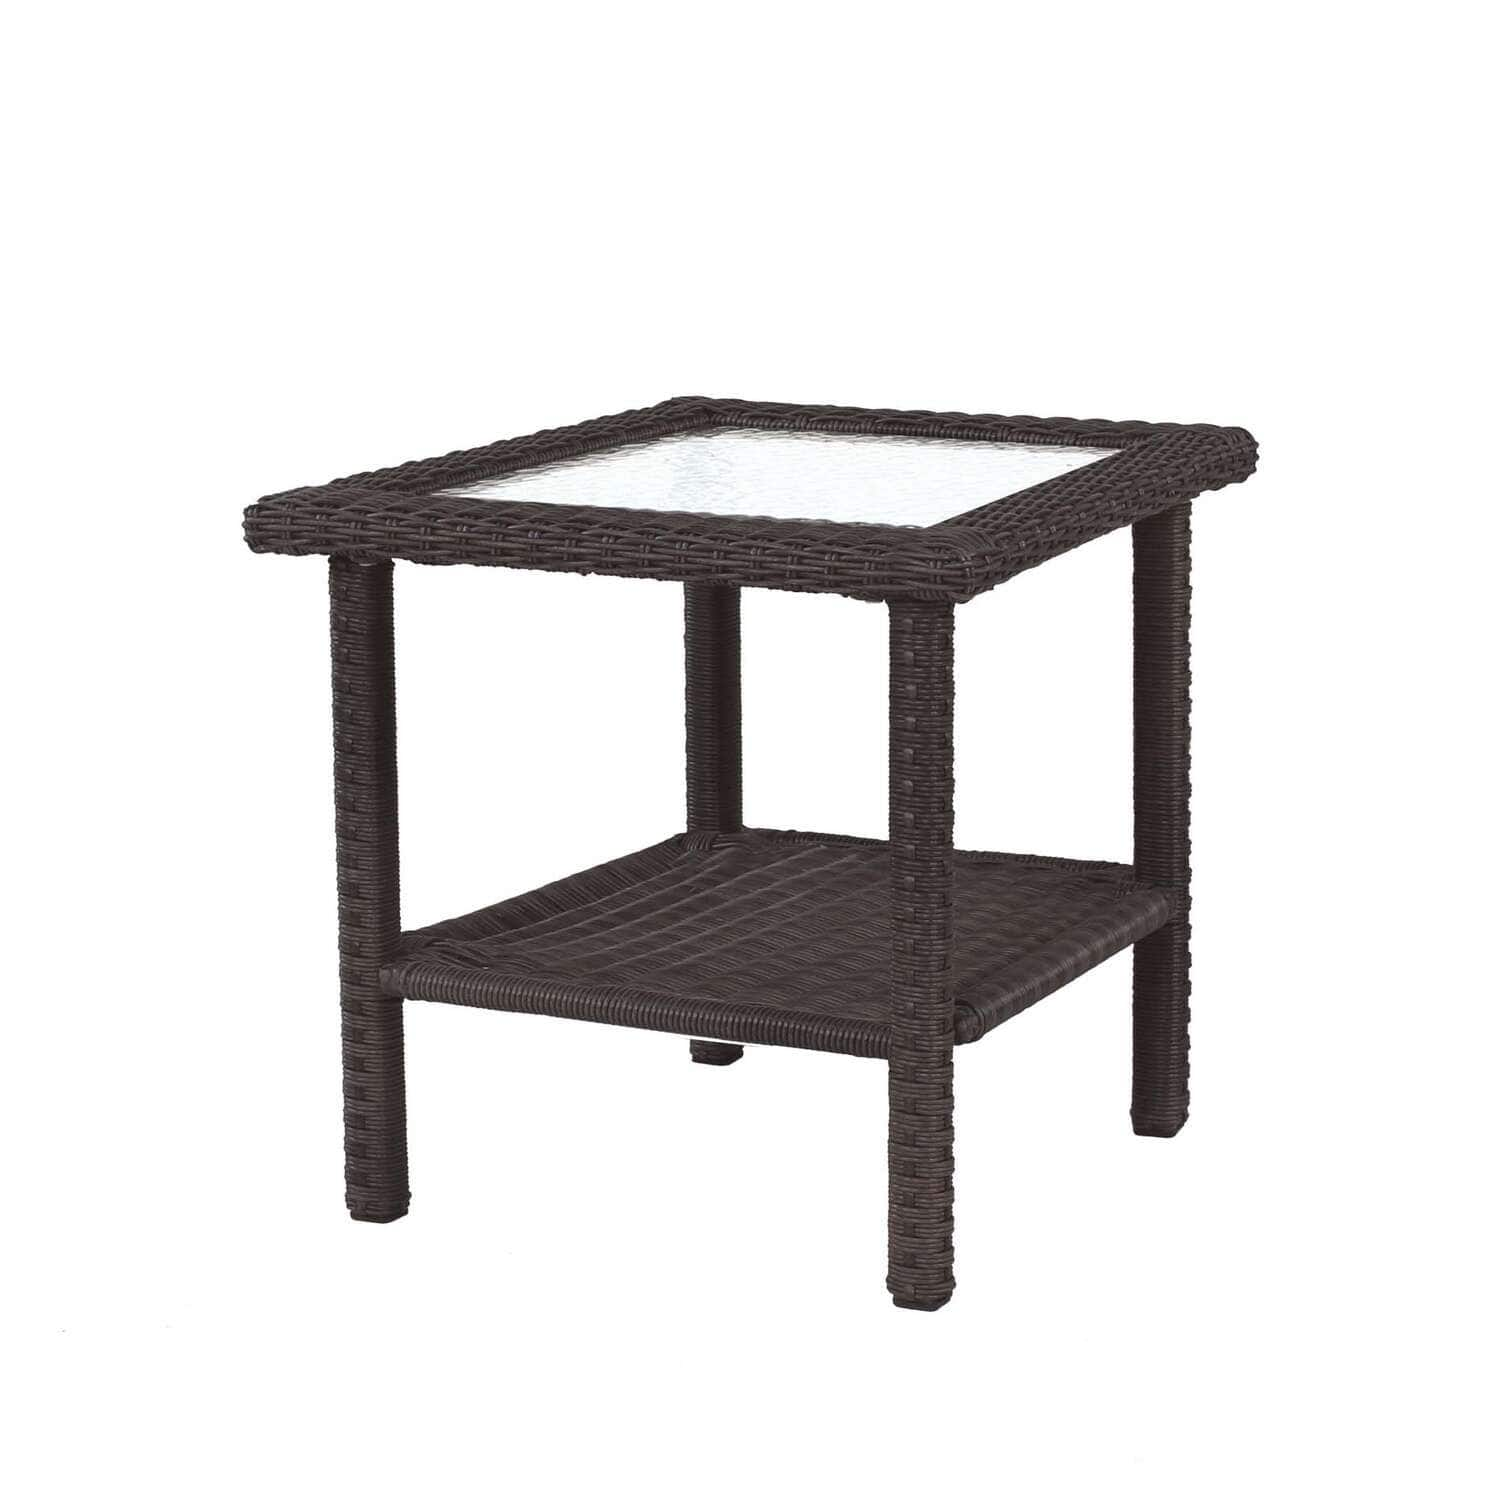 Living Accents Prescott Square Brown Wicker Side Table w/ Glass Top $27 +  2.5% Slickdeals Cashback (P/C Req'd) at Select Ace Hardware + Free Curbside Pickup ** YMMV